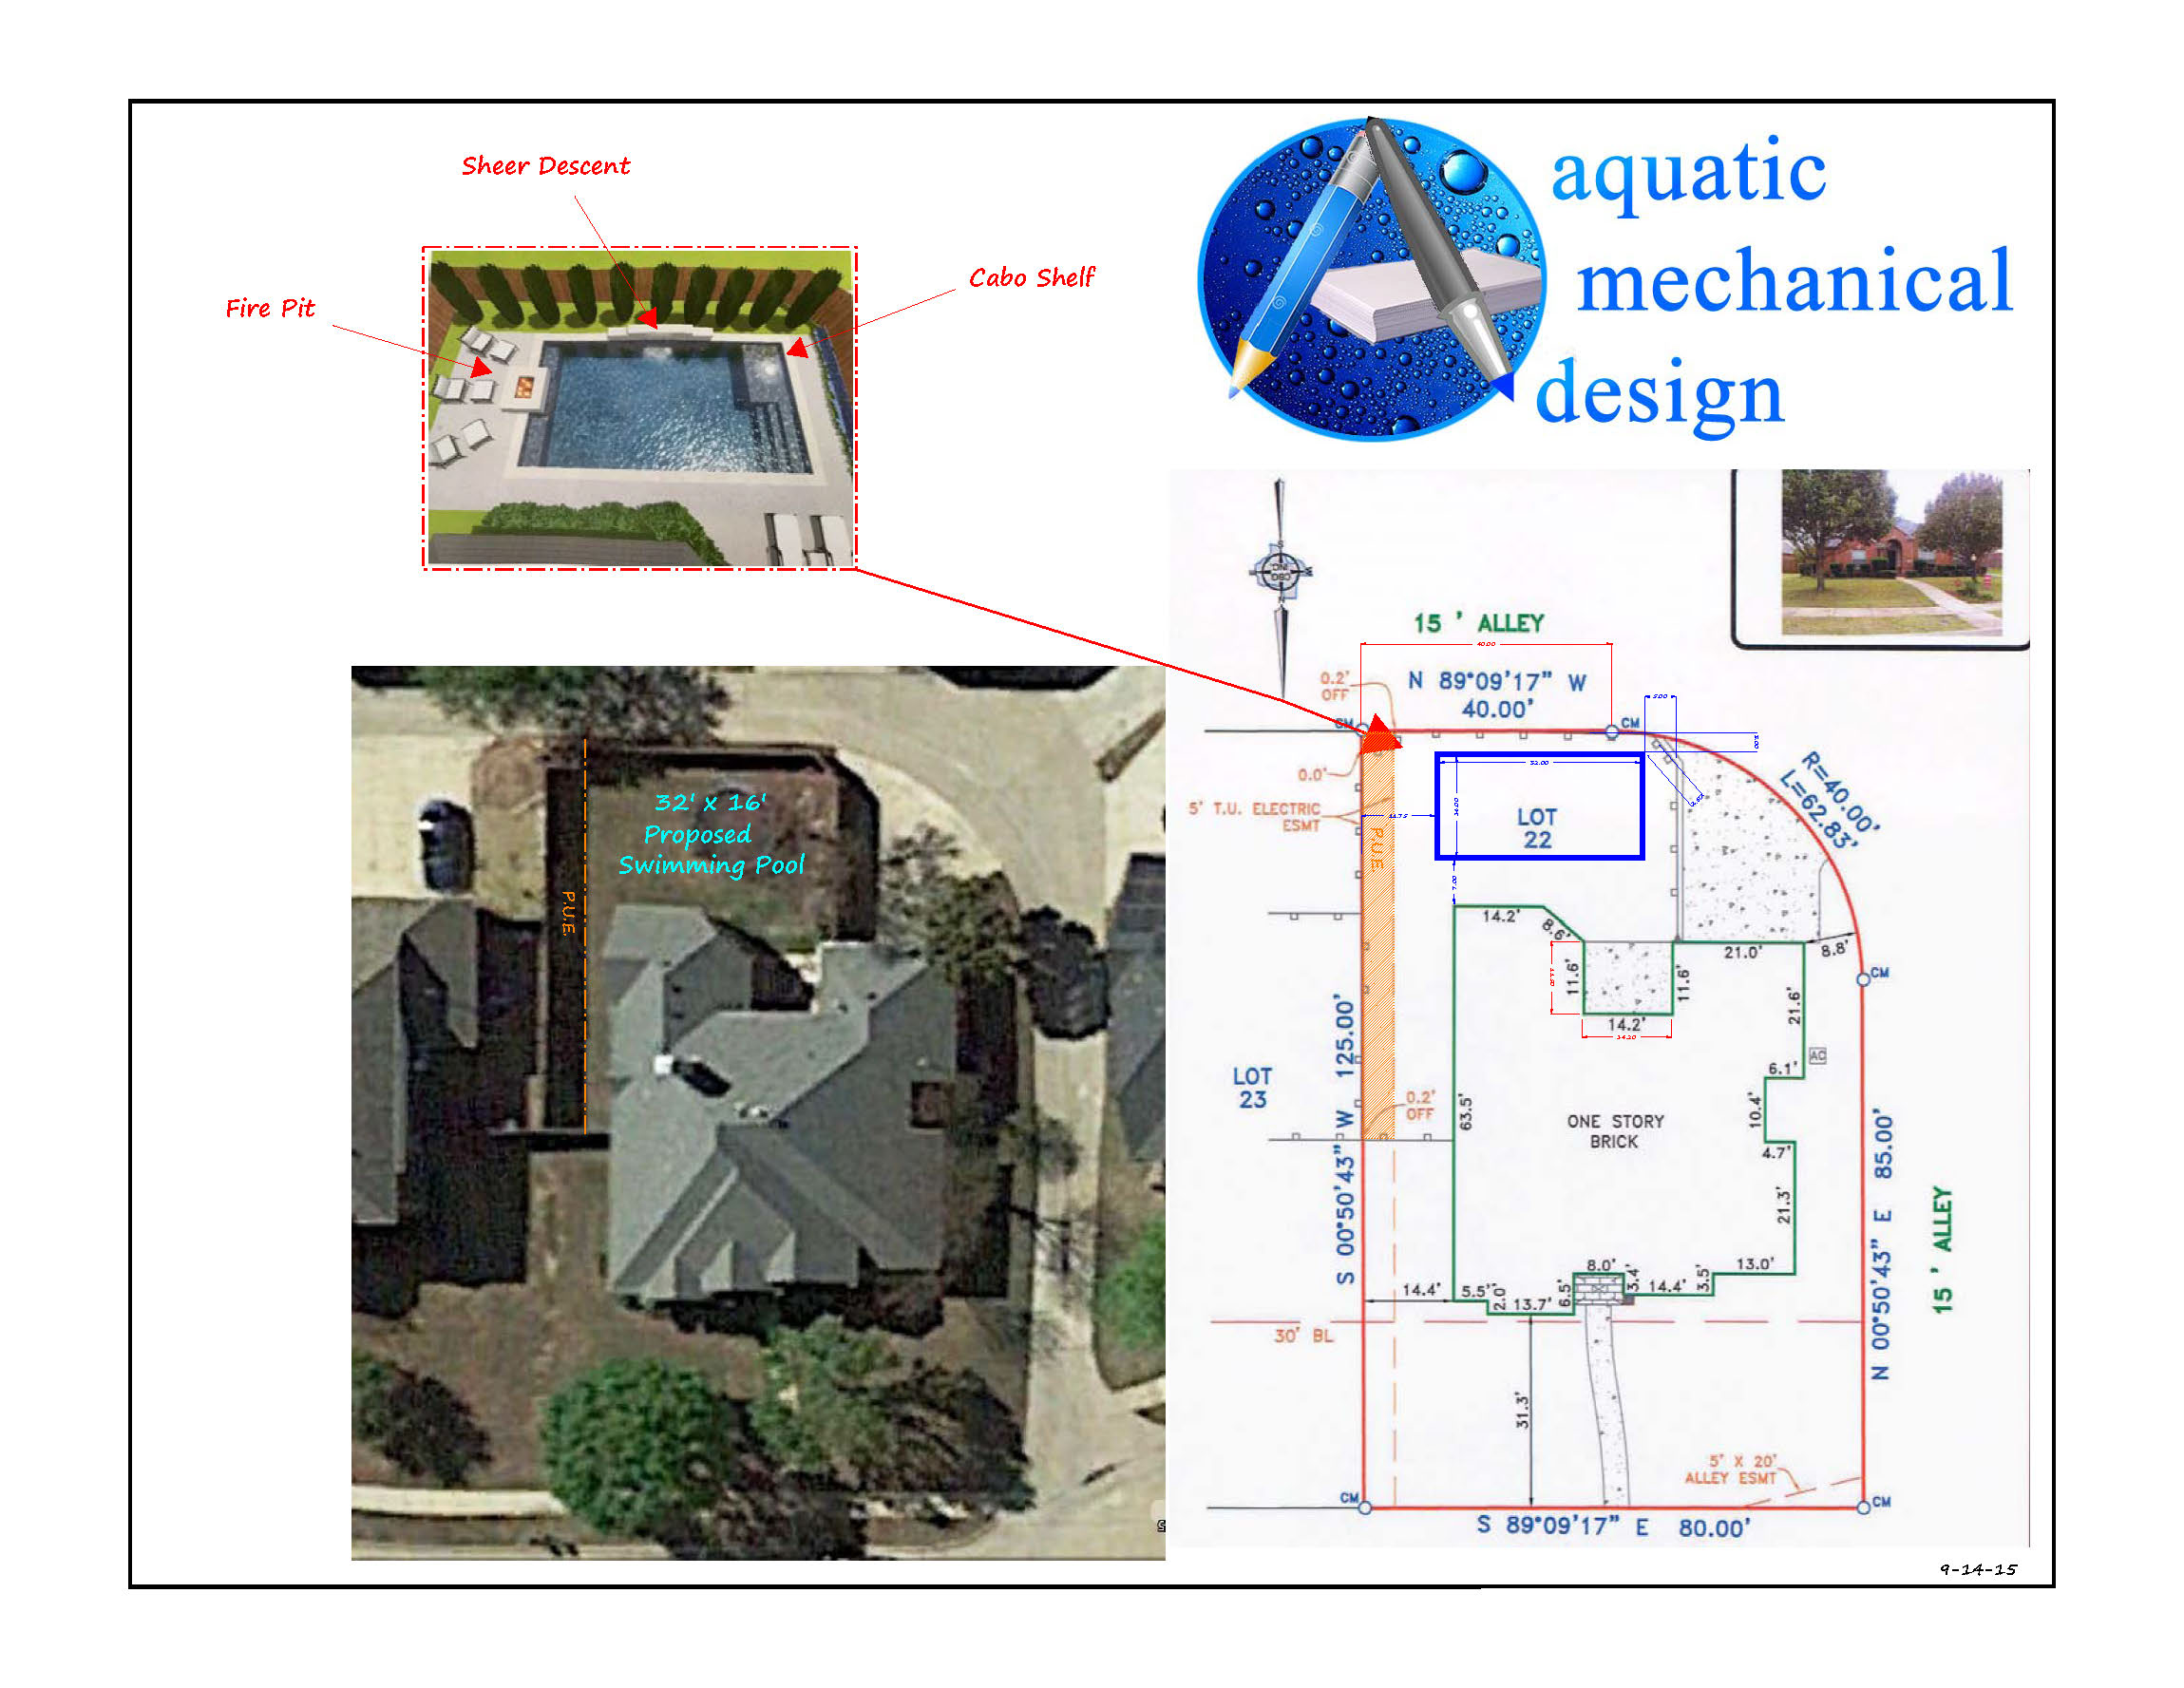 Pool questioner aquatic mechanical engineering 800 766 for Pool design and engineering